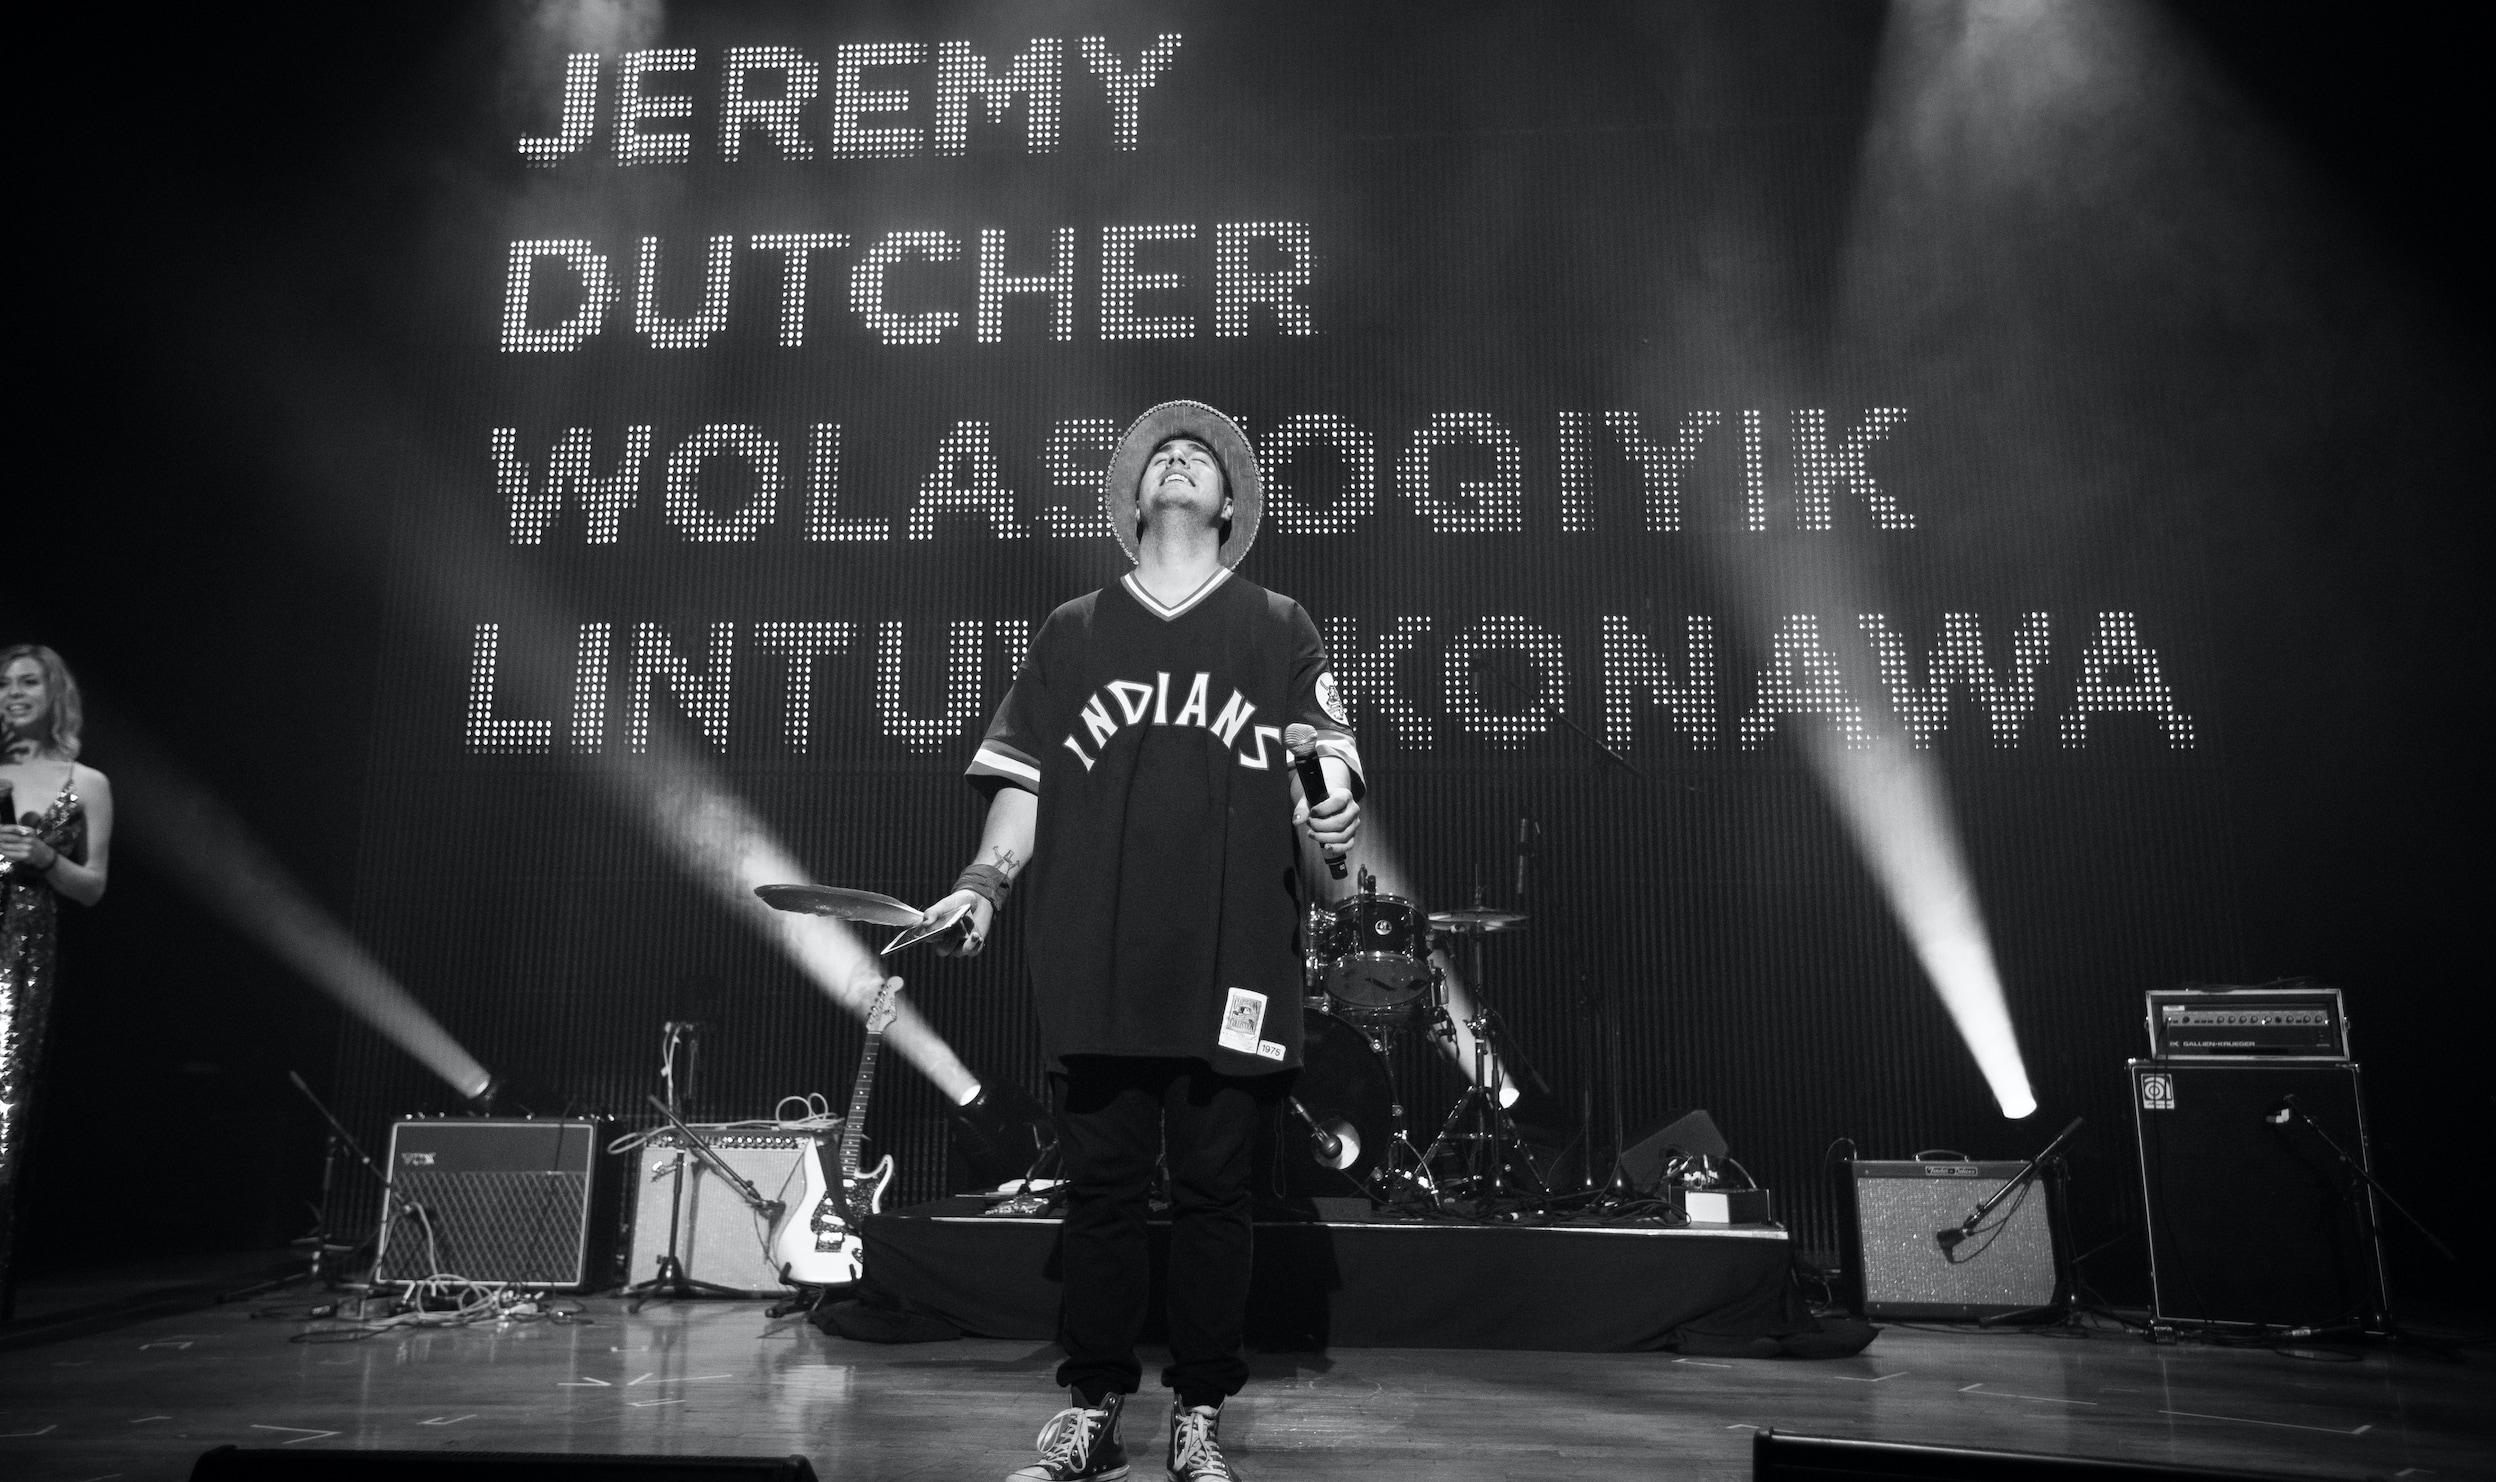 """A  black and white photo of a man standing on stage wearing a hat. In his left hand he holds a microphone. In his right hand, he holds an iPhone and a feather. Behind him are the words written in large letters """"Jeremy Dutcher Wolaskoqiyik Lintuwakonawa."""""""